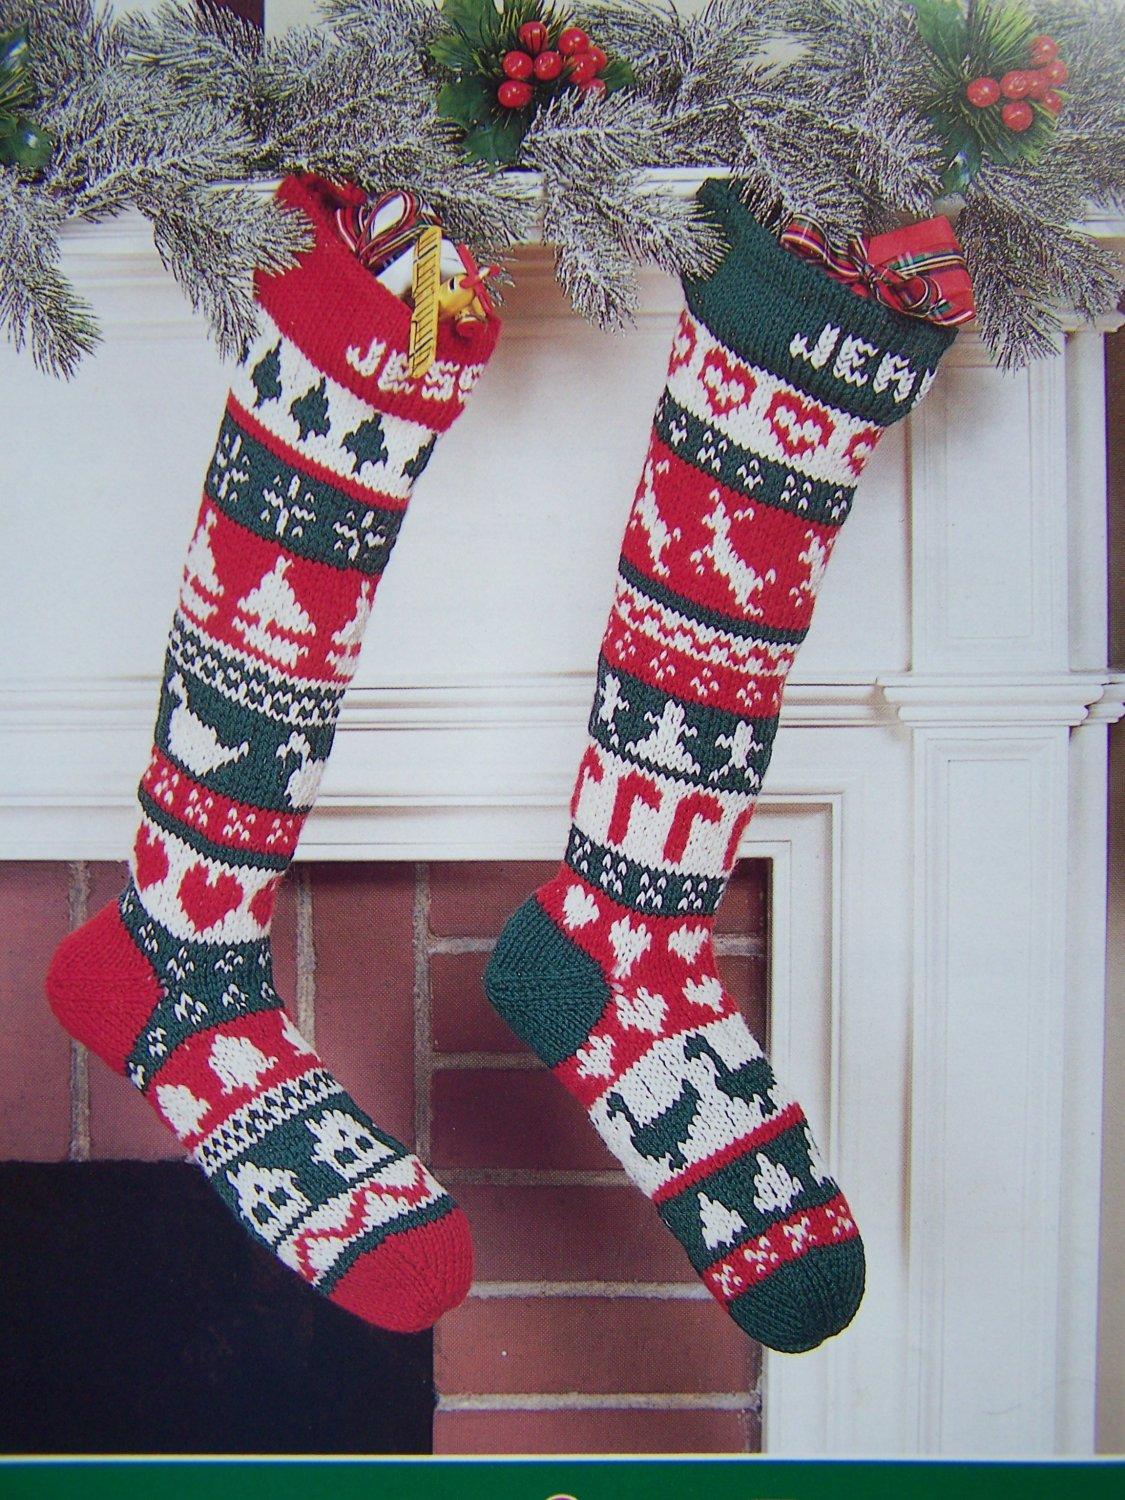 Vintage Christmas Stocking Knitting Pattern : Vintage Christmas Knitting & Crochet Patterns Poinsettia Afghan Scandinav...